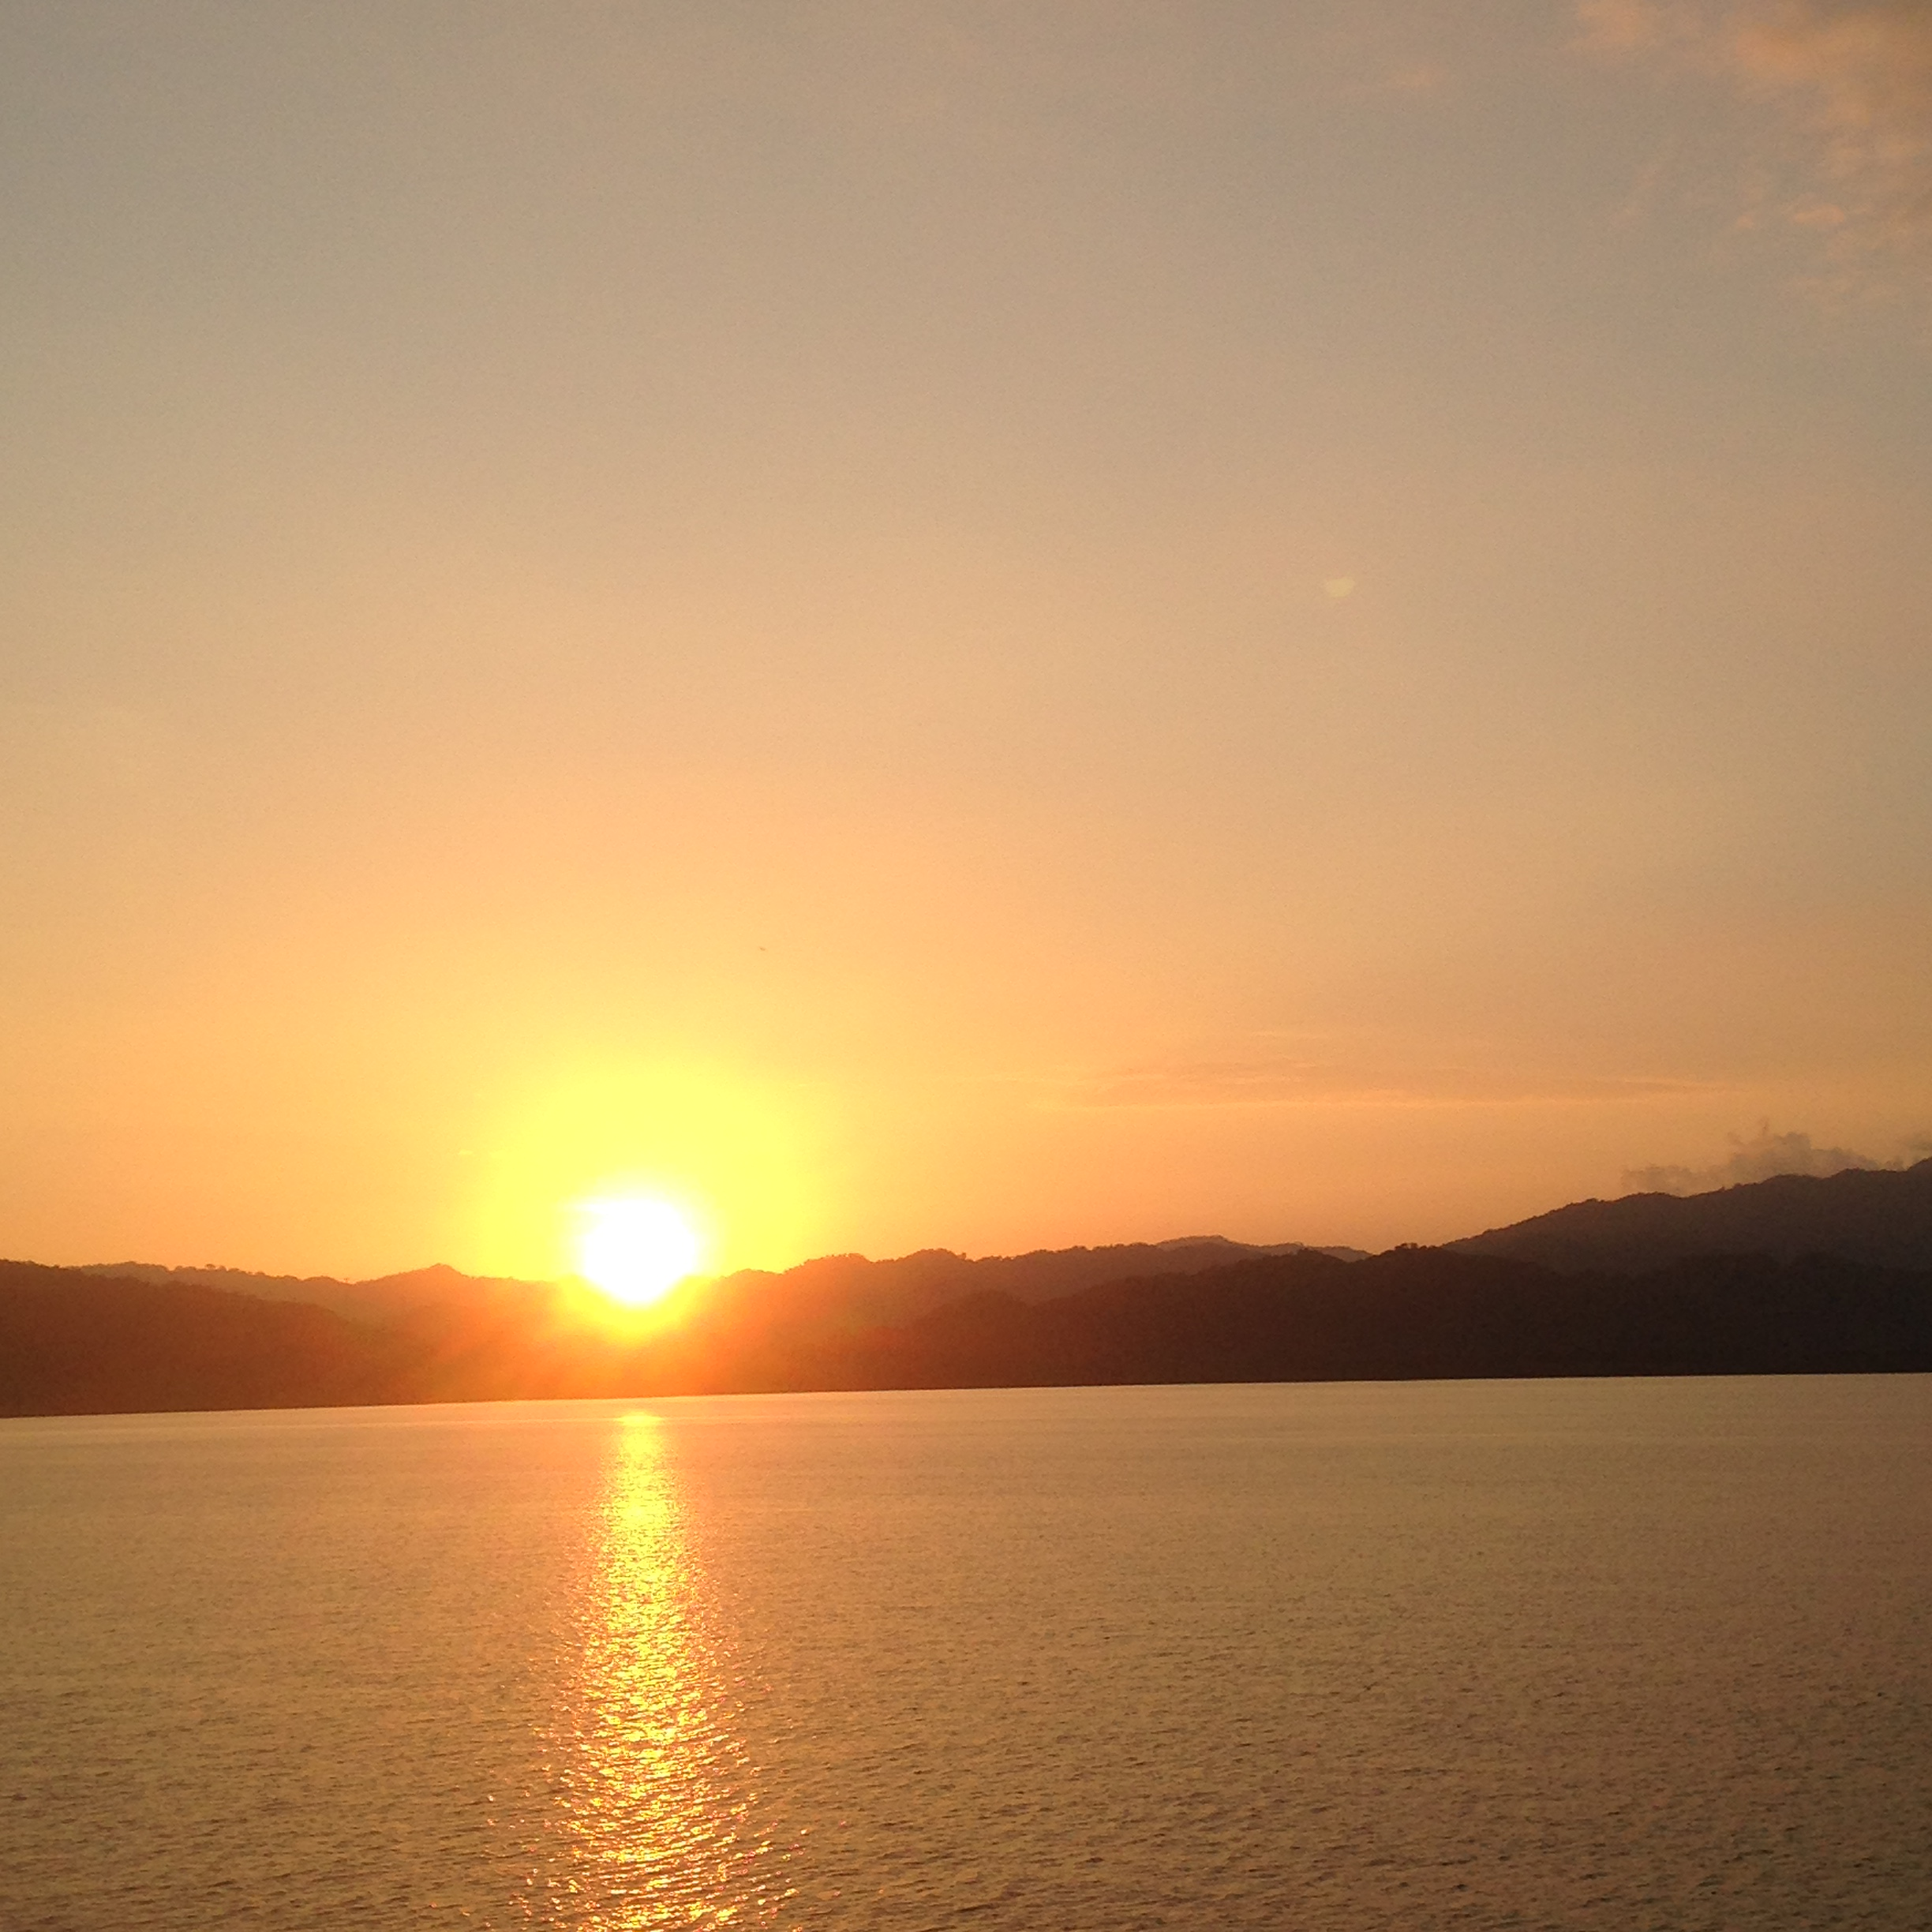 Travel: Yoga & Sunsets in Costa RIca